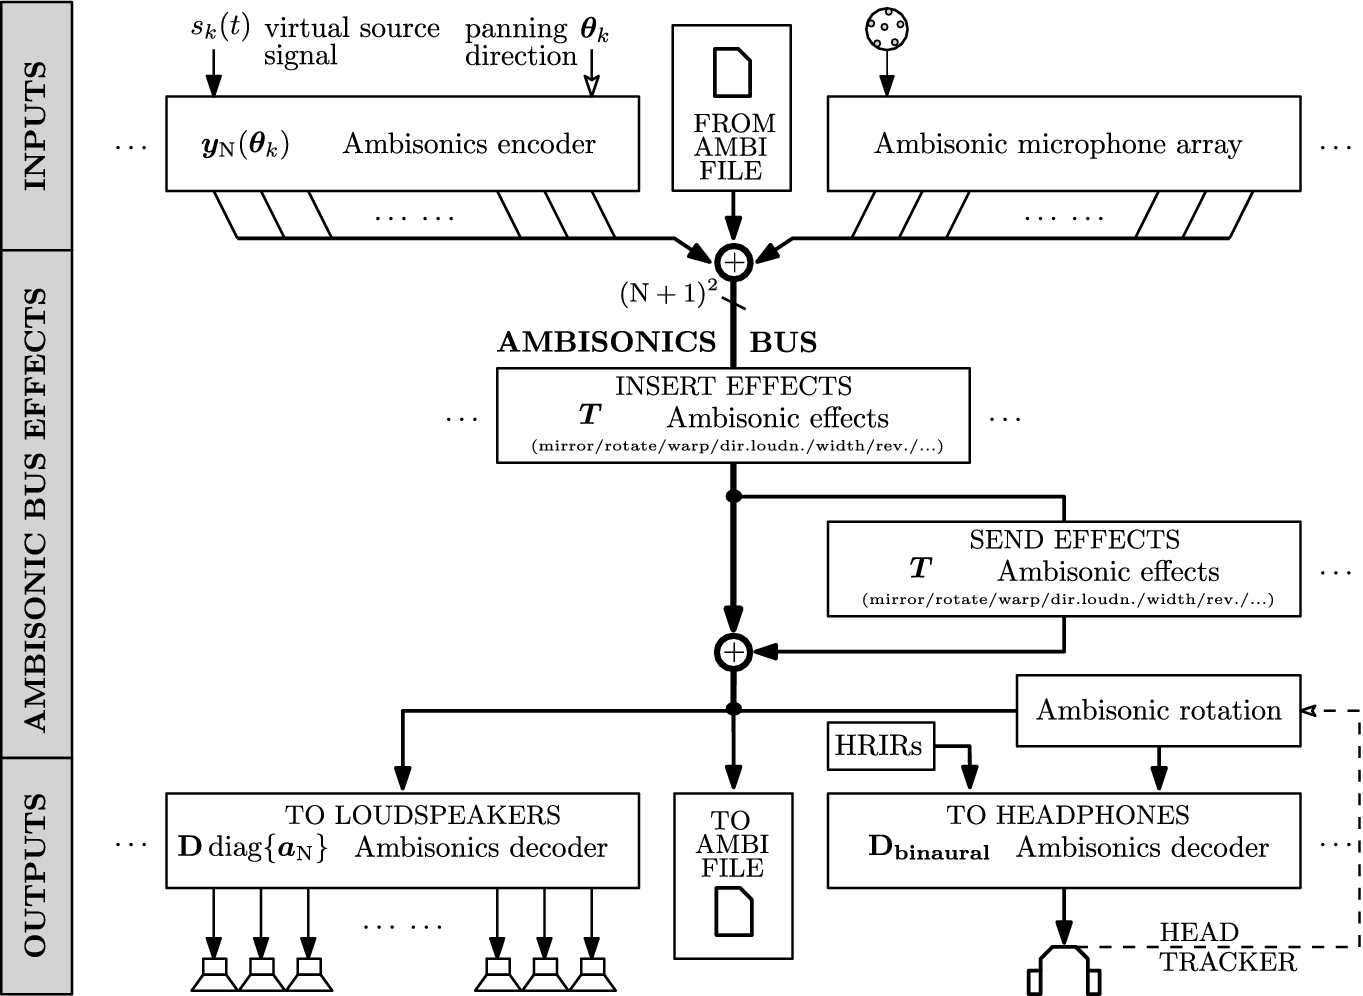 Ambisonics signal flow and effects in ambisonic productions | springerlink